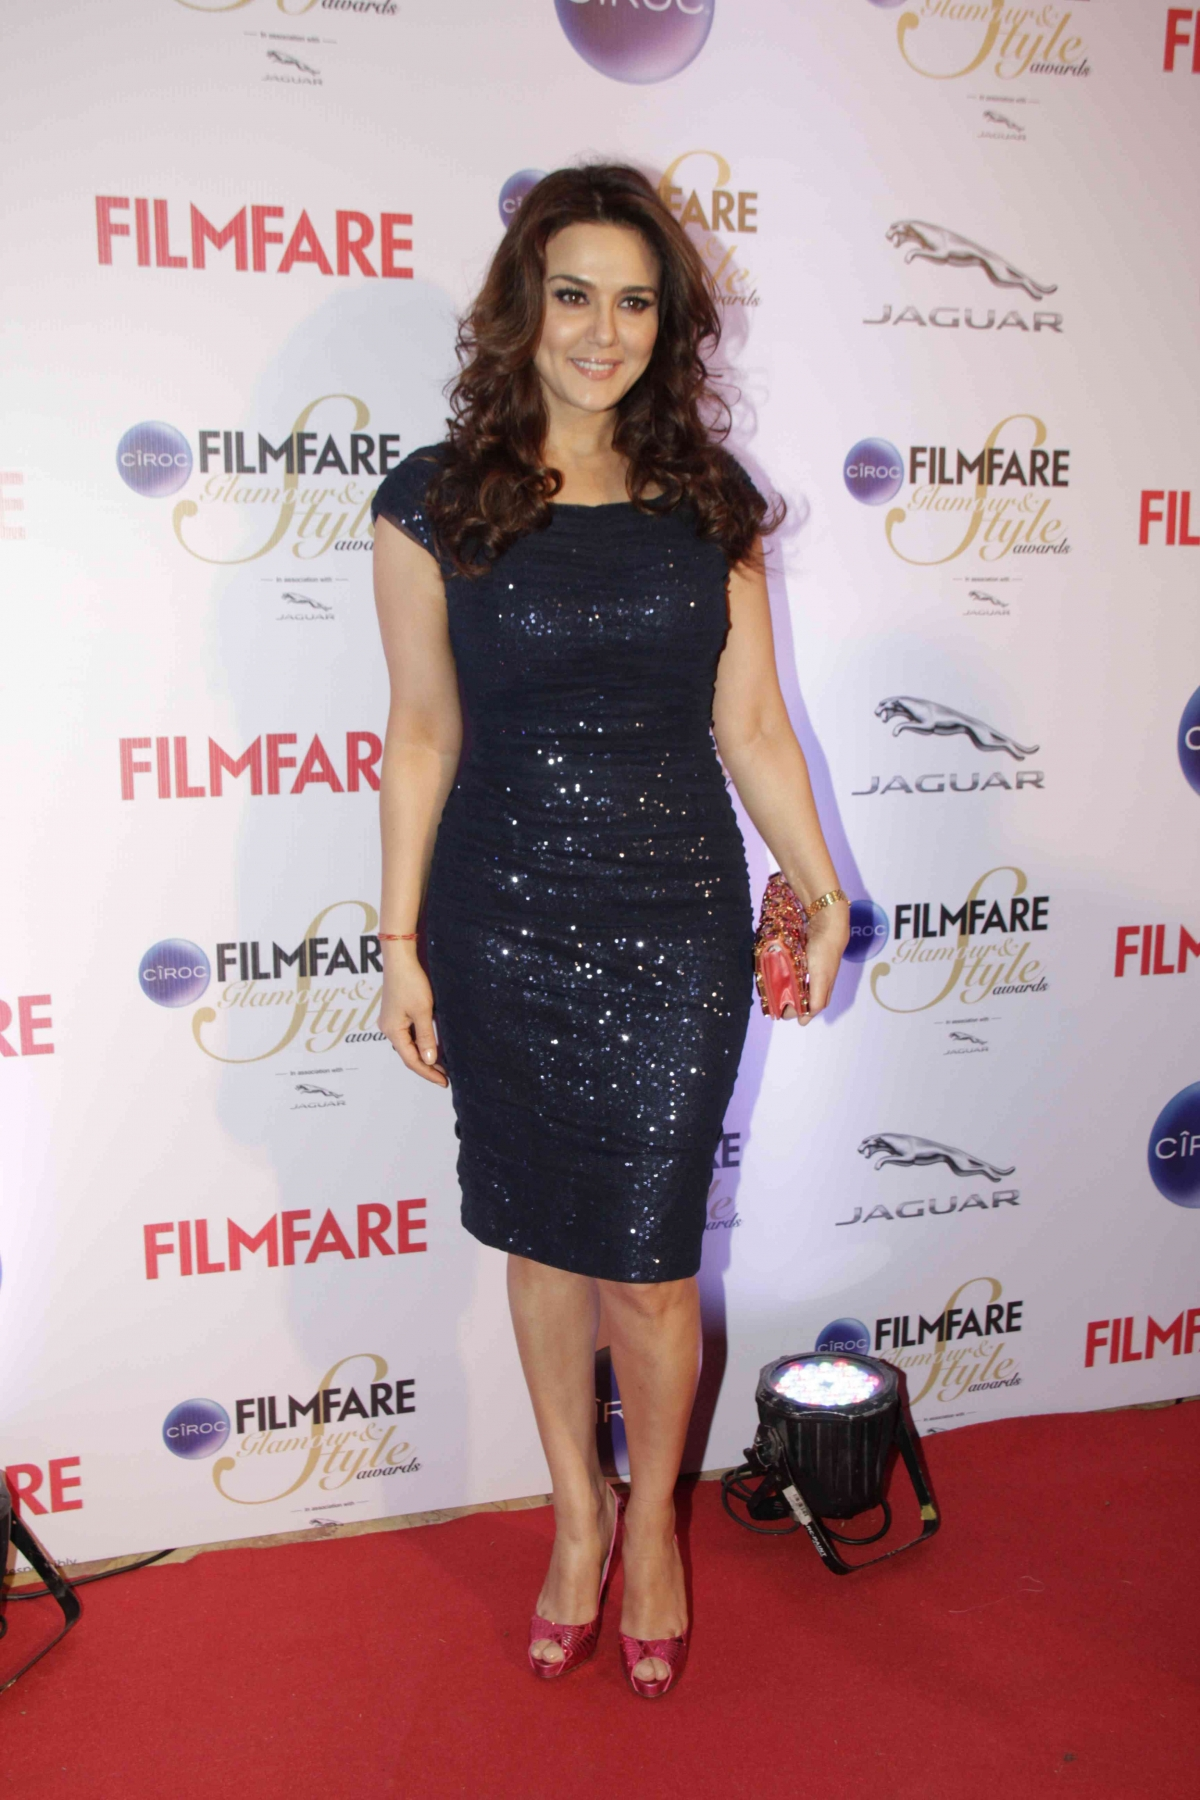 http://data1.ibtimes.co.in/en/full/564788/kareena-kapoor-khan-jacqueline-fernandez-alia-bhatt-other-best-dressed-divas-filmfare-glamour.jpg